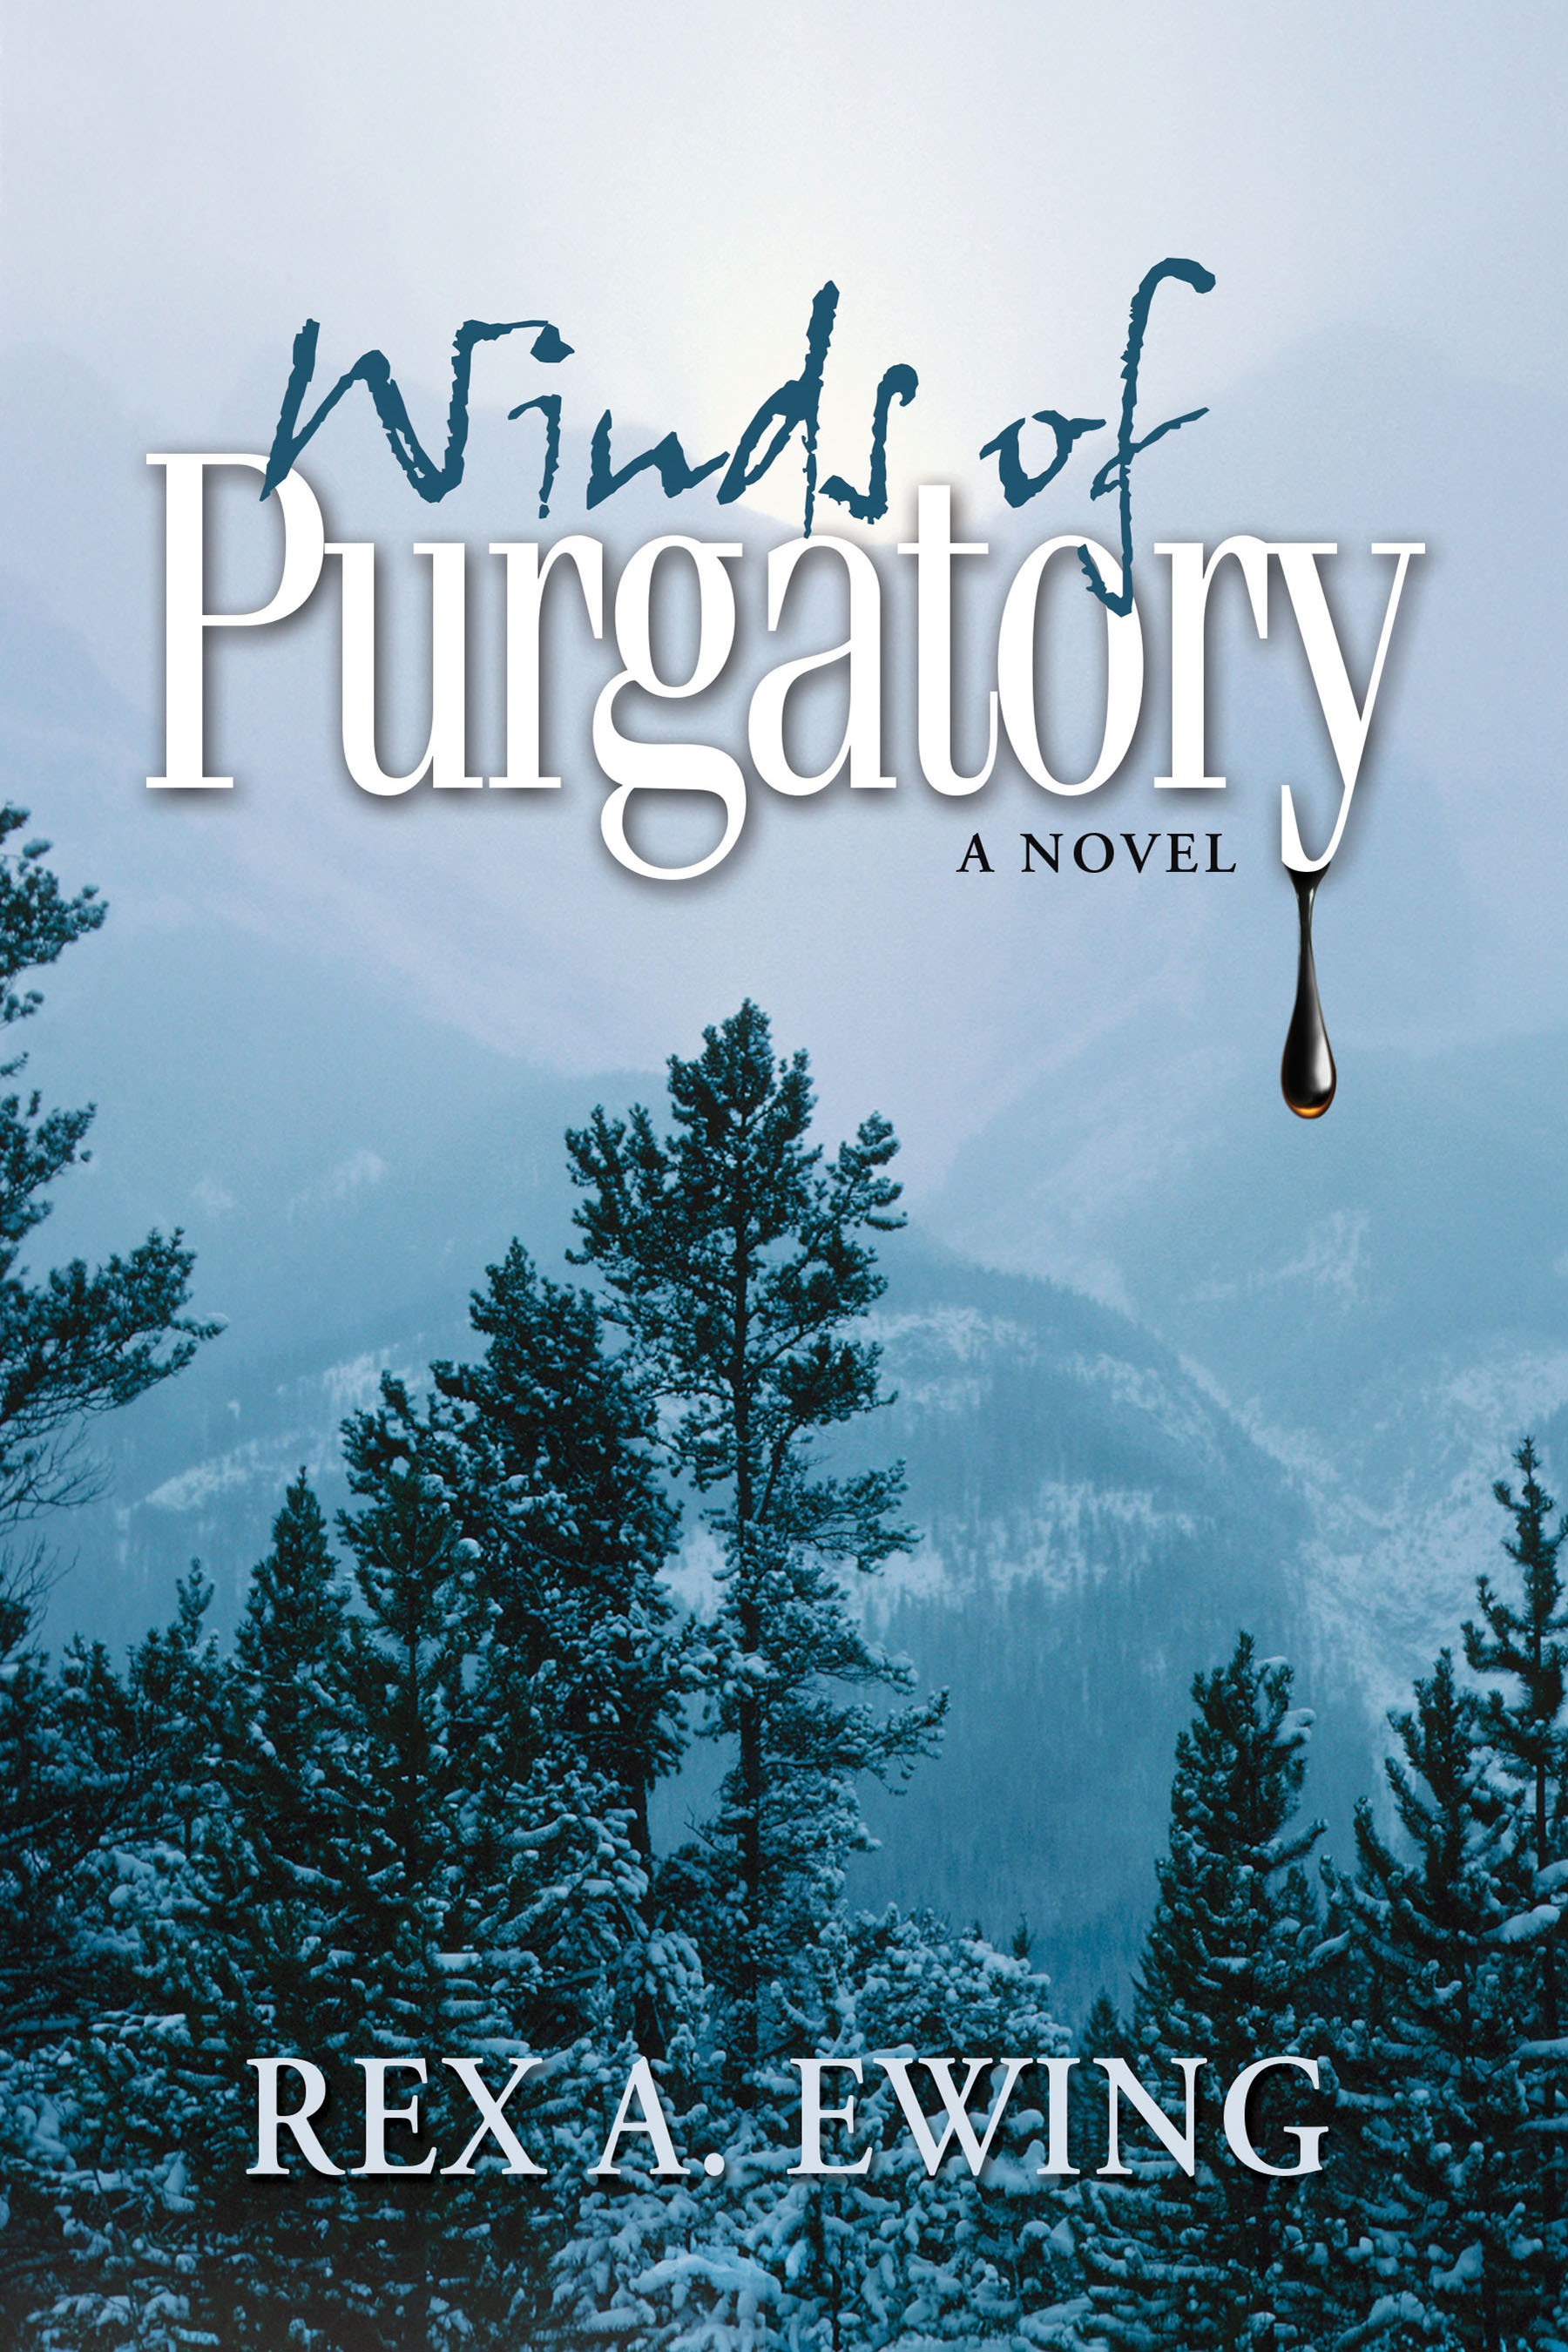 Winds of Purgatory, A Novel (softcover) WIN-pb